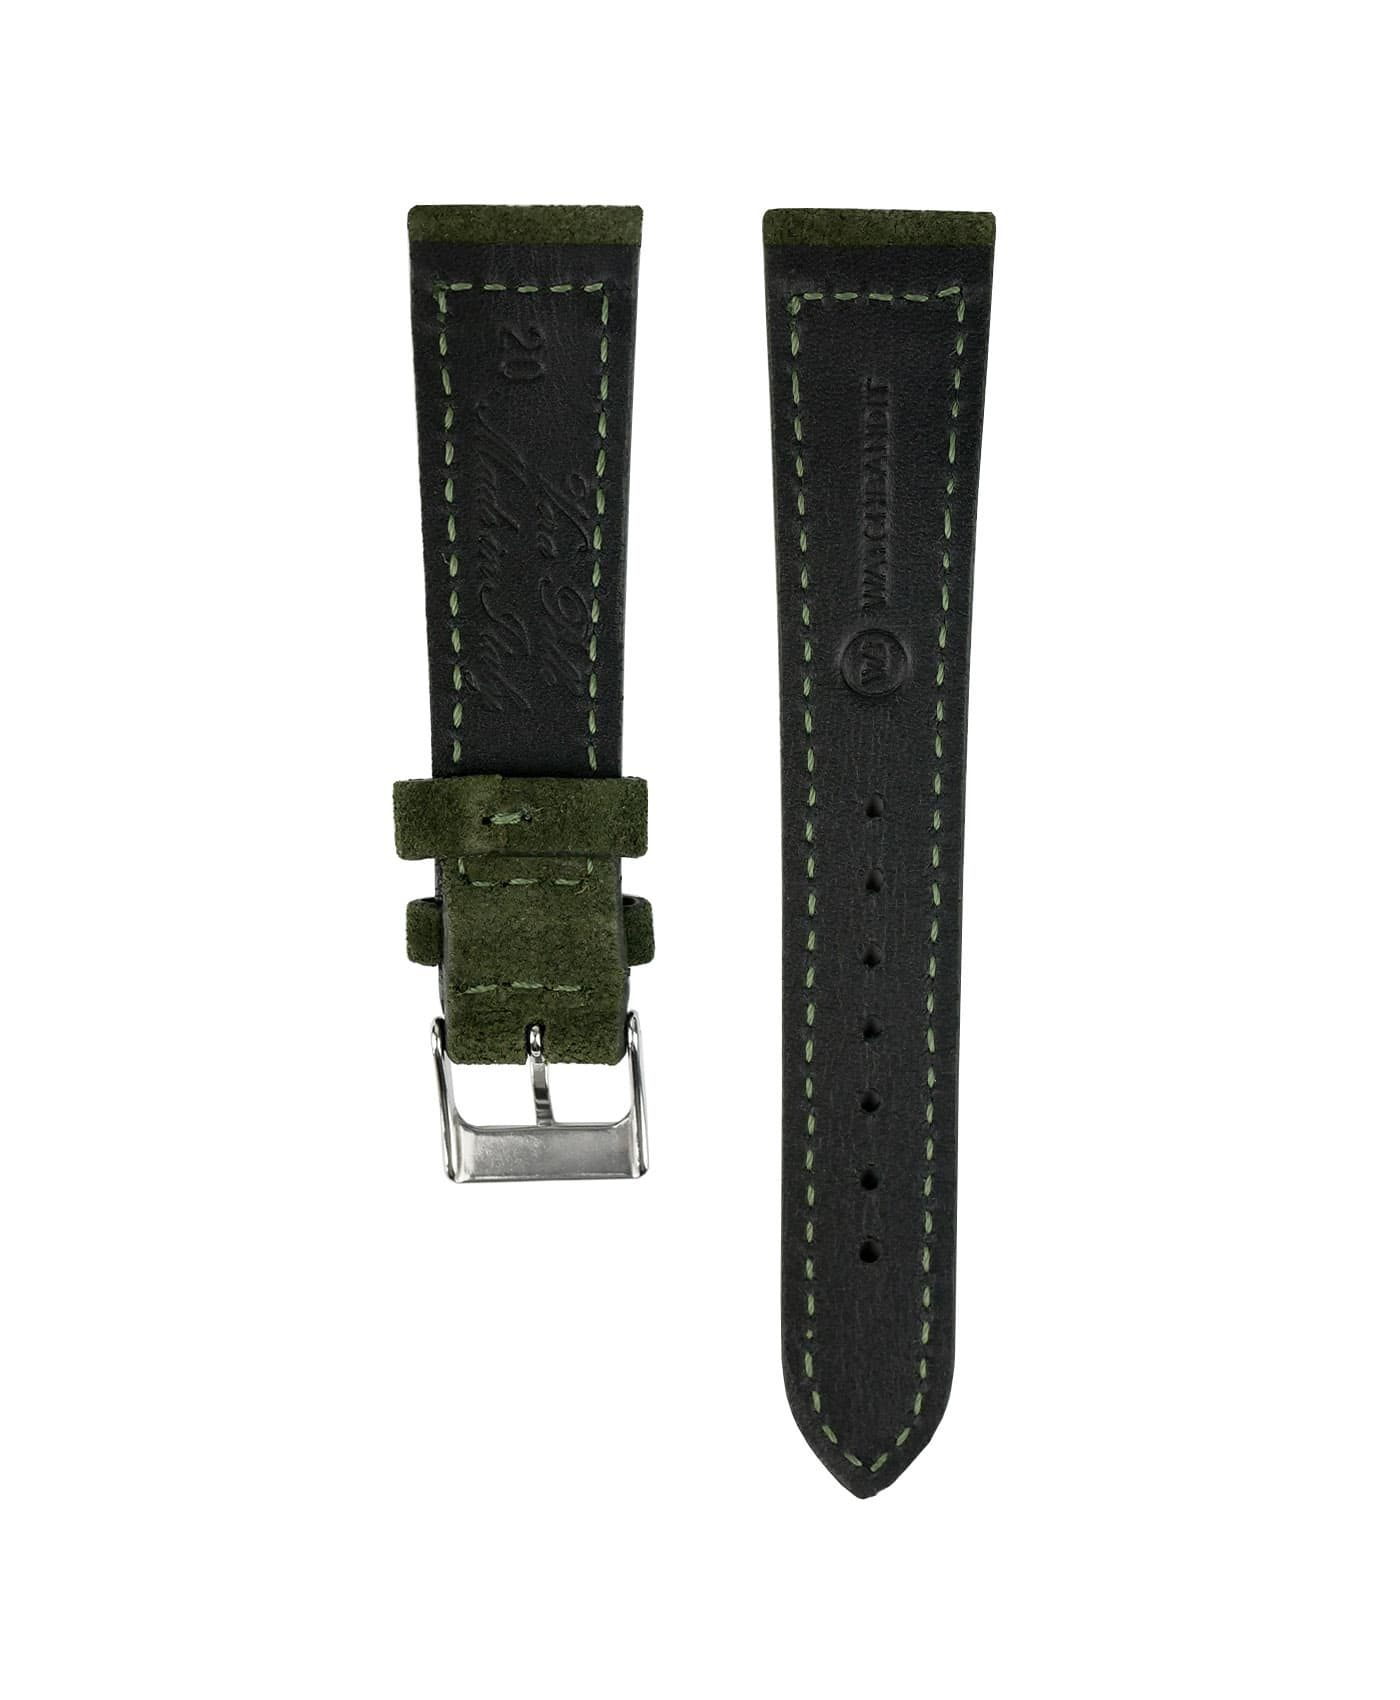 Suede leather strap with side seam_green_back